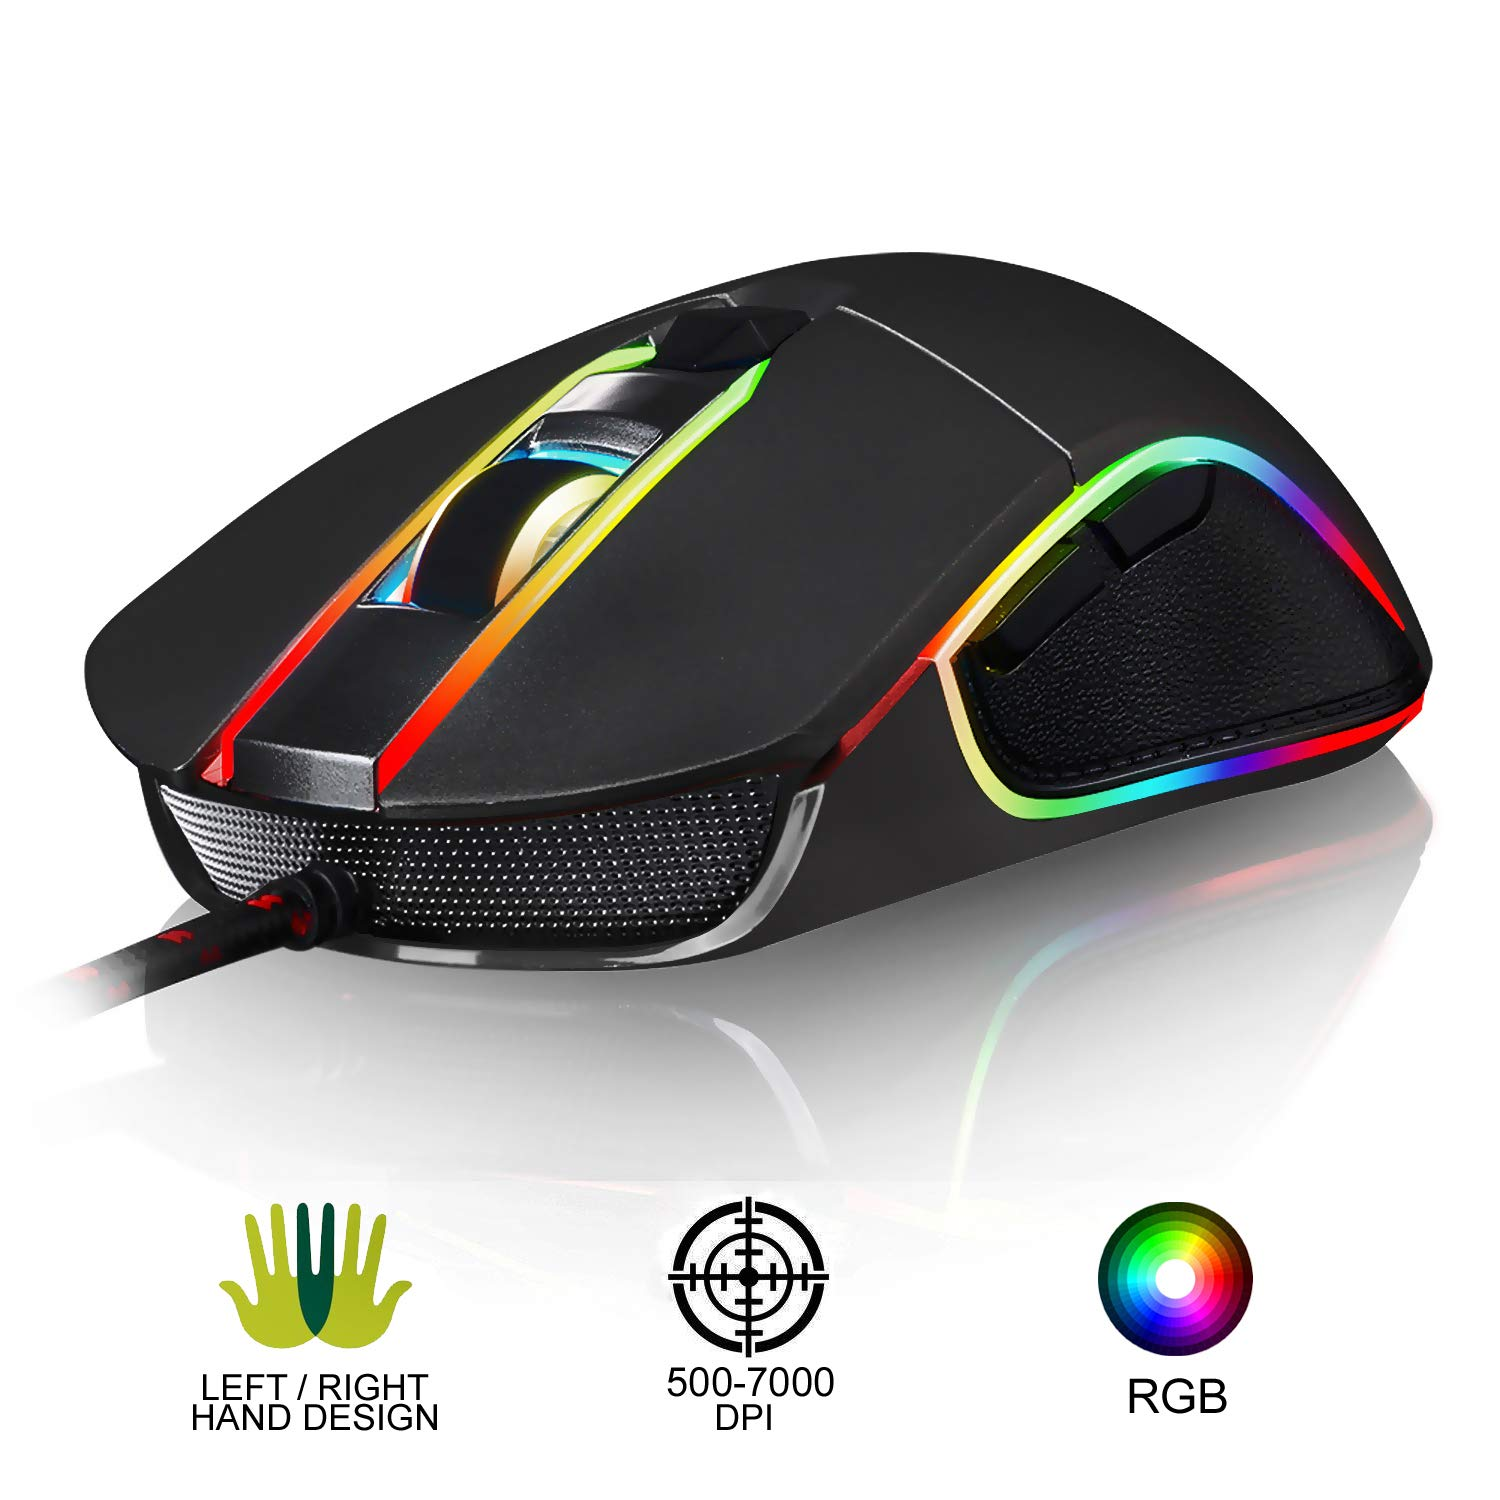 KLIM AIM Gaming Mouse – Wired Ergonomic Gamer USB Computer Mice, Chroma RGB Mouse 7000 DPI Programmable Buttons Ambidextrous, Ergonomic for Desktop PC Laptop, High Precision Optical Laser Black